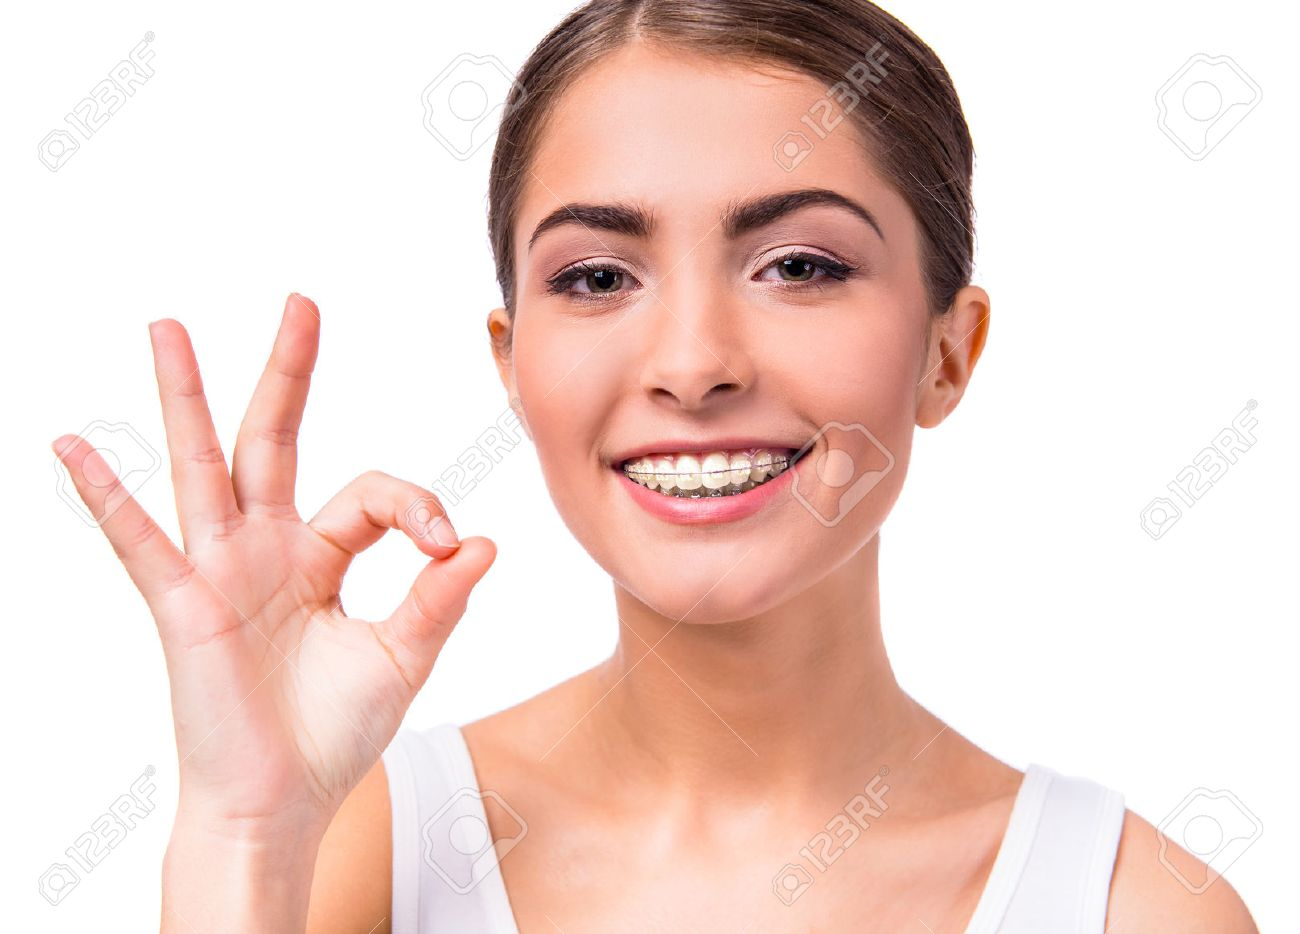 Portrait of a beautiful woman with braces on teeth, isolated on a white background Standard-Bild - 47179455